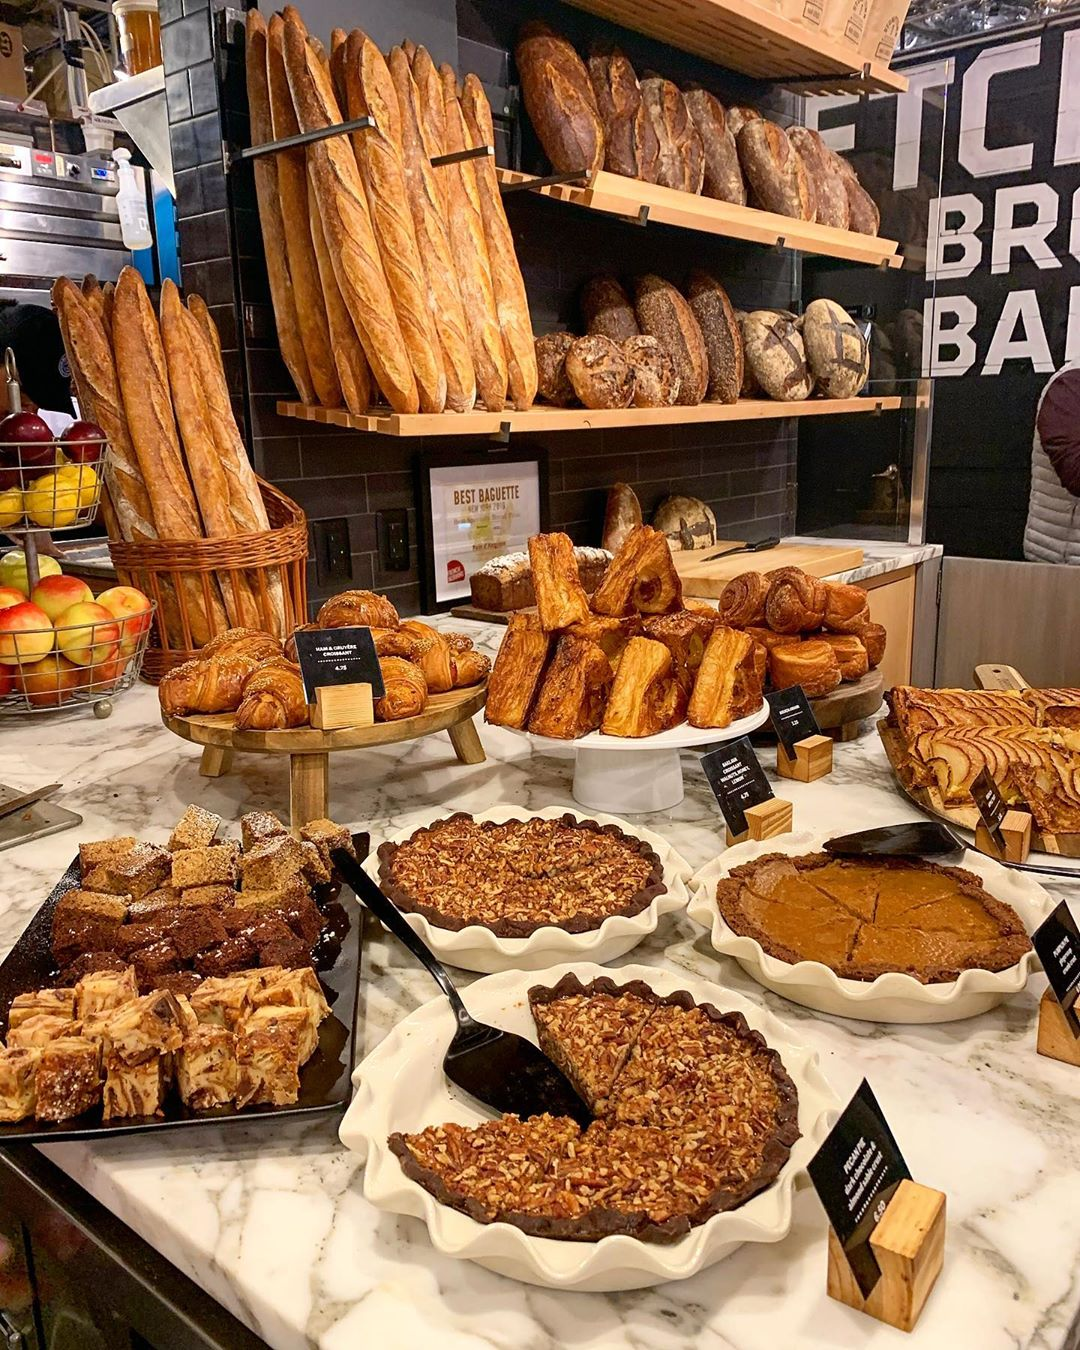 Top New York City Bakery Cafe D Avignon Expands With All New